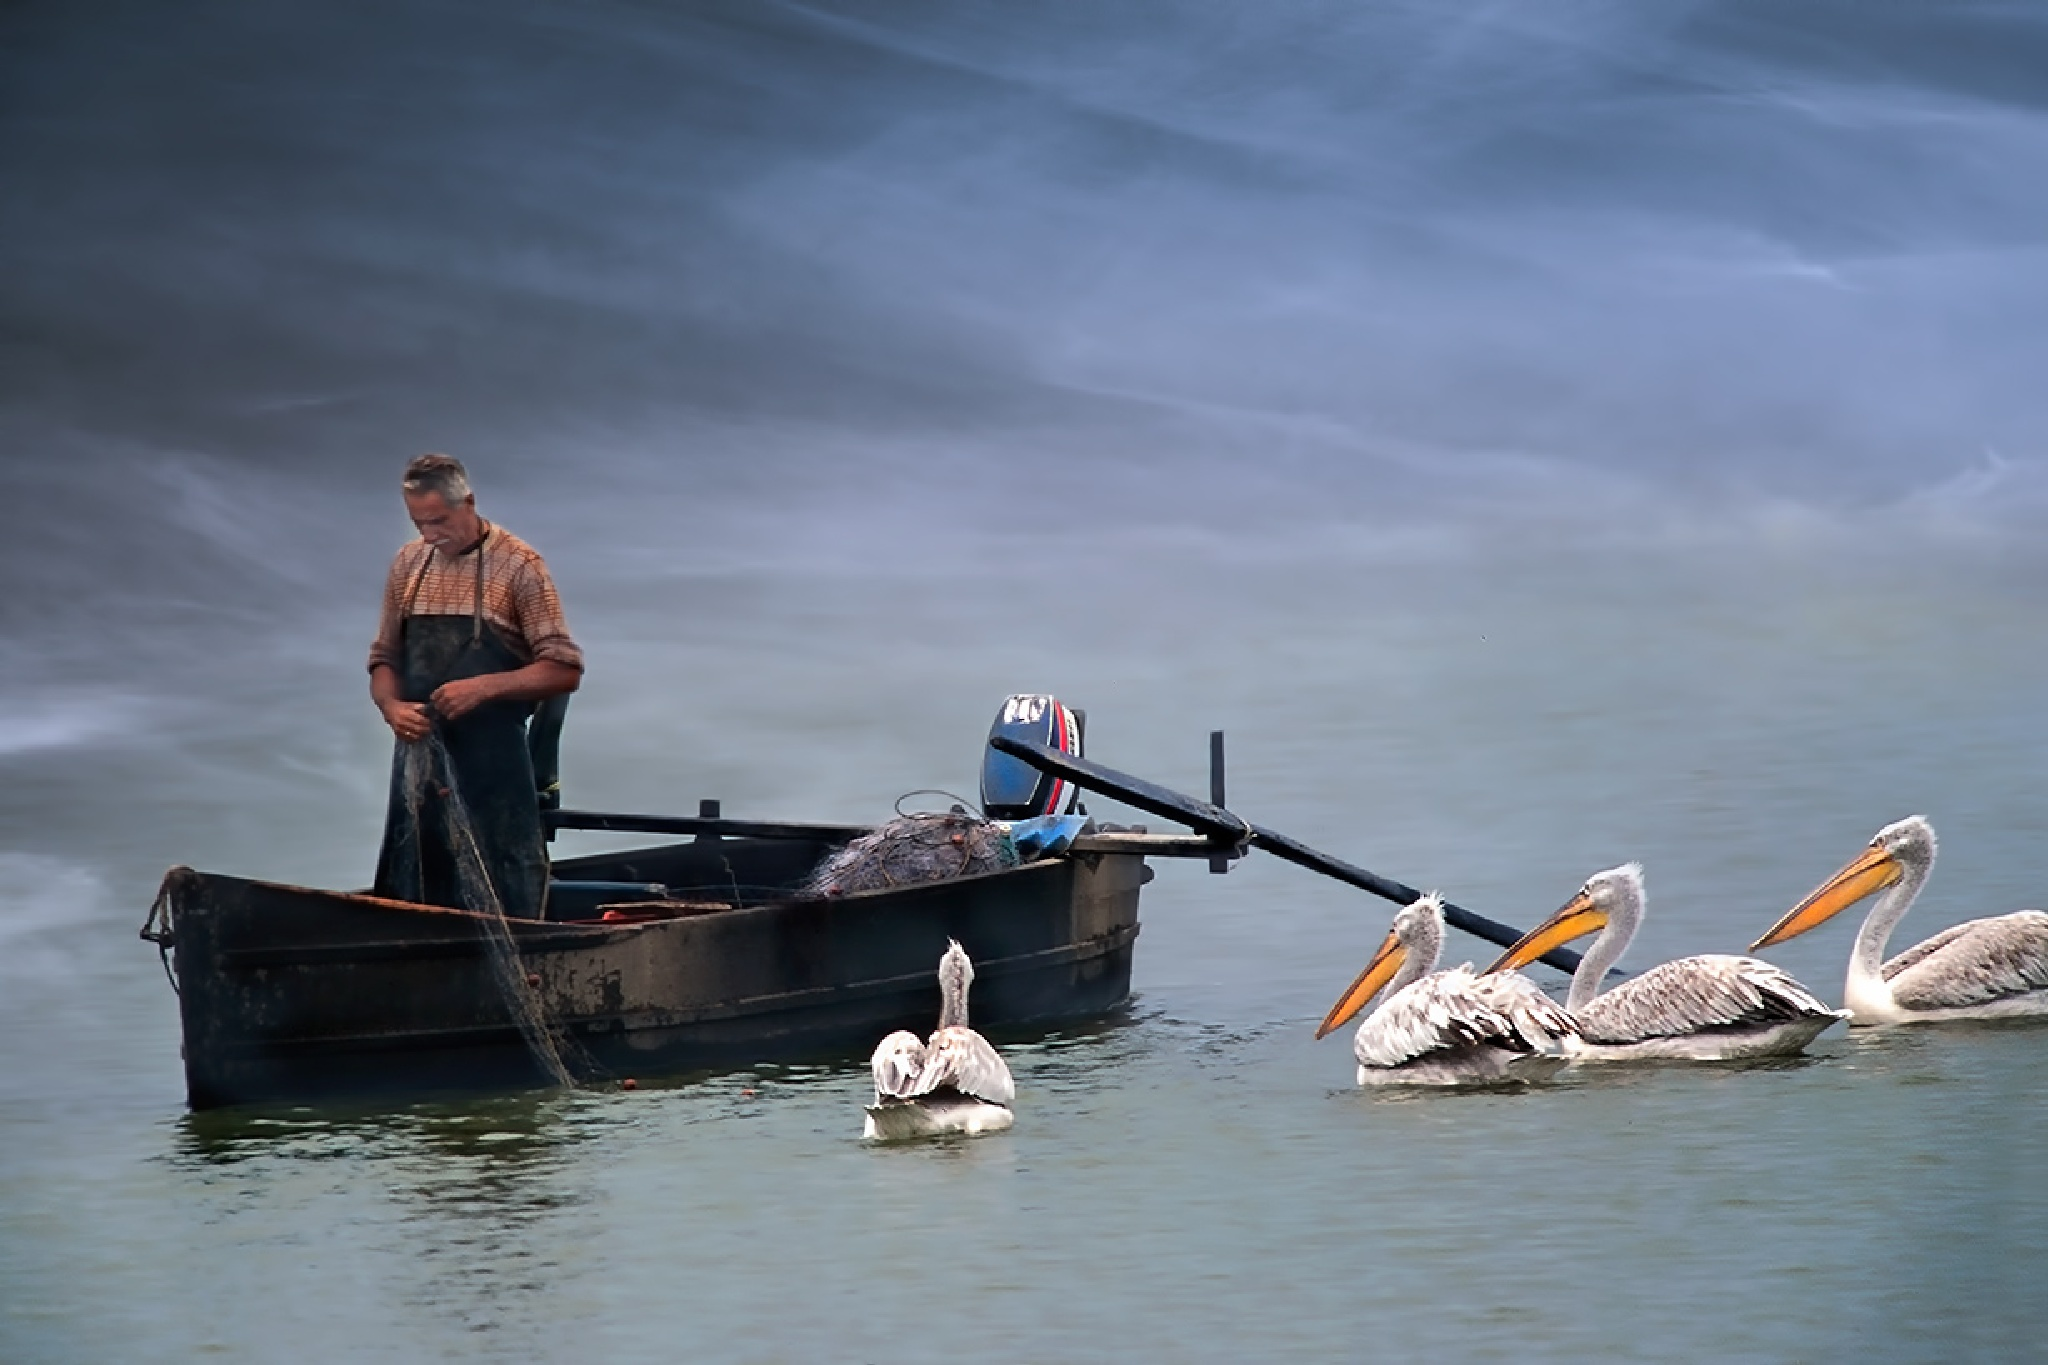 waiting for fish from fisherman by Sotiris Siomis